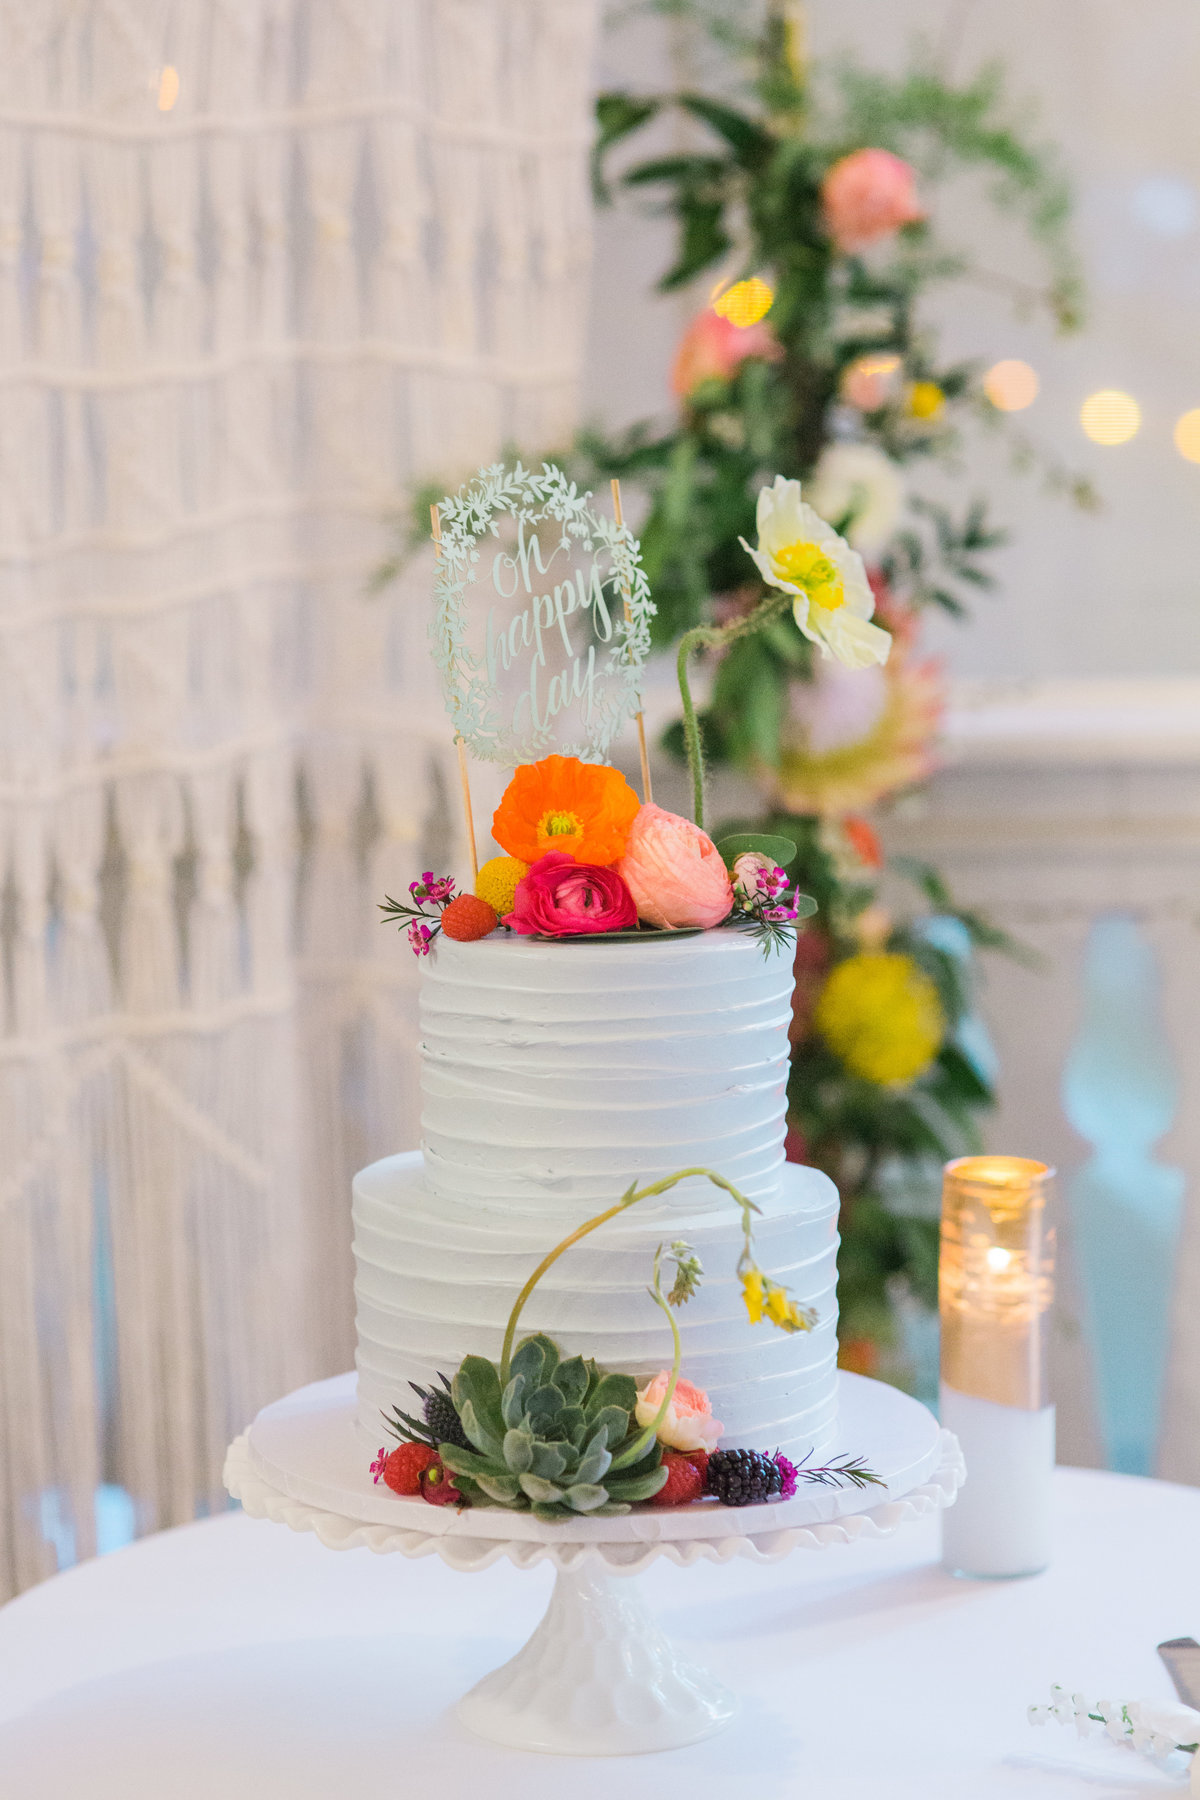 Full wedding cake from Moustache Baked Goods in front of boho marame wall screen at Madrona Manor in Healdsburg California